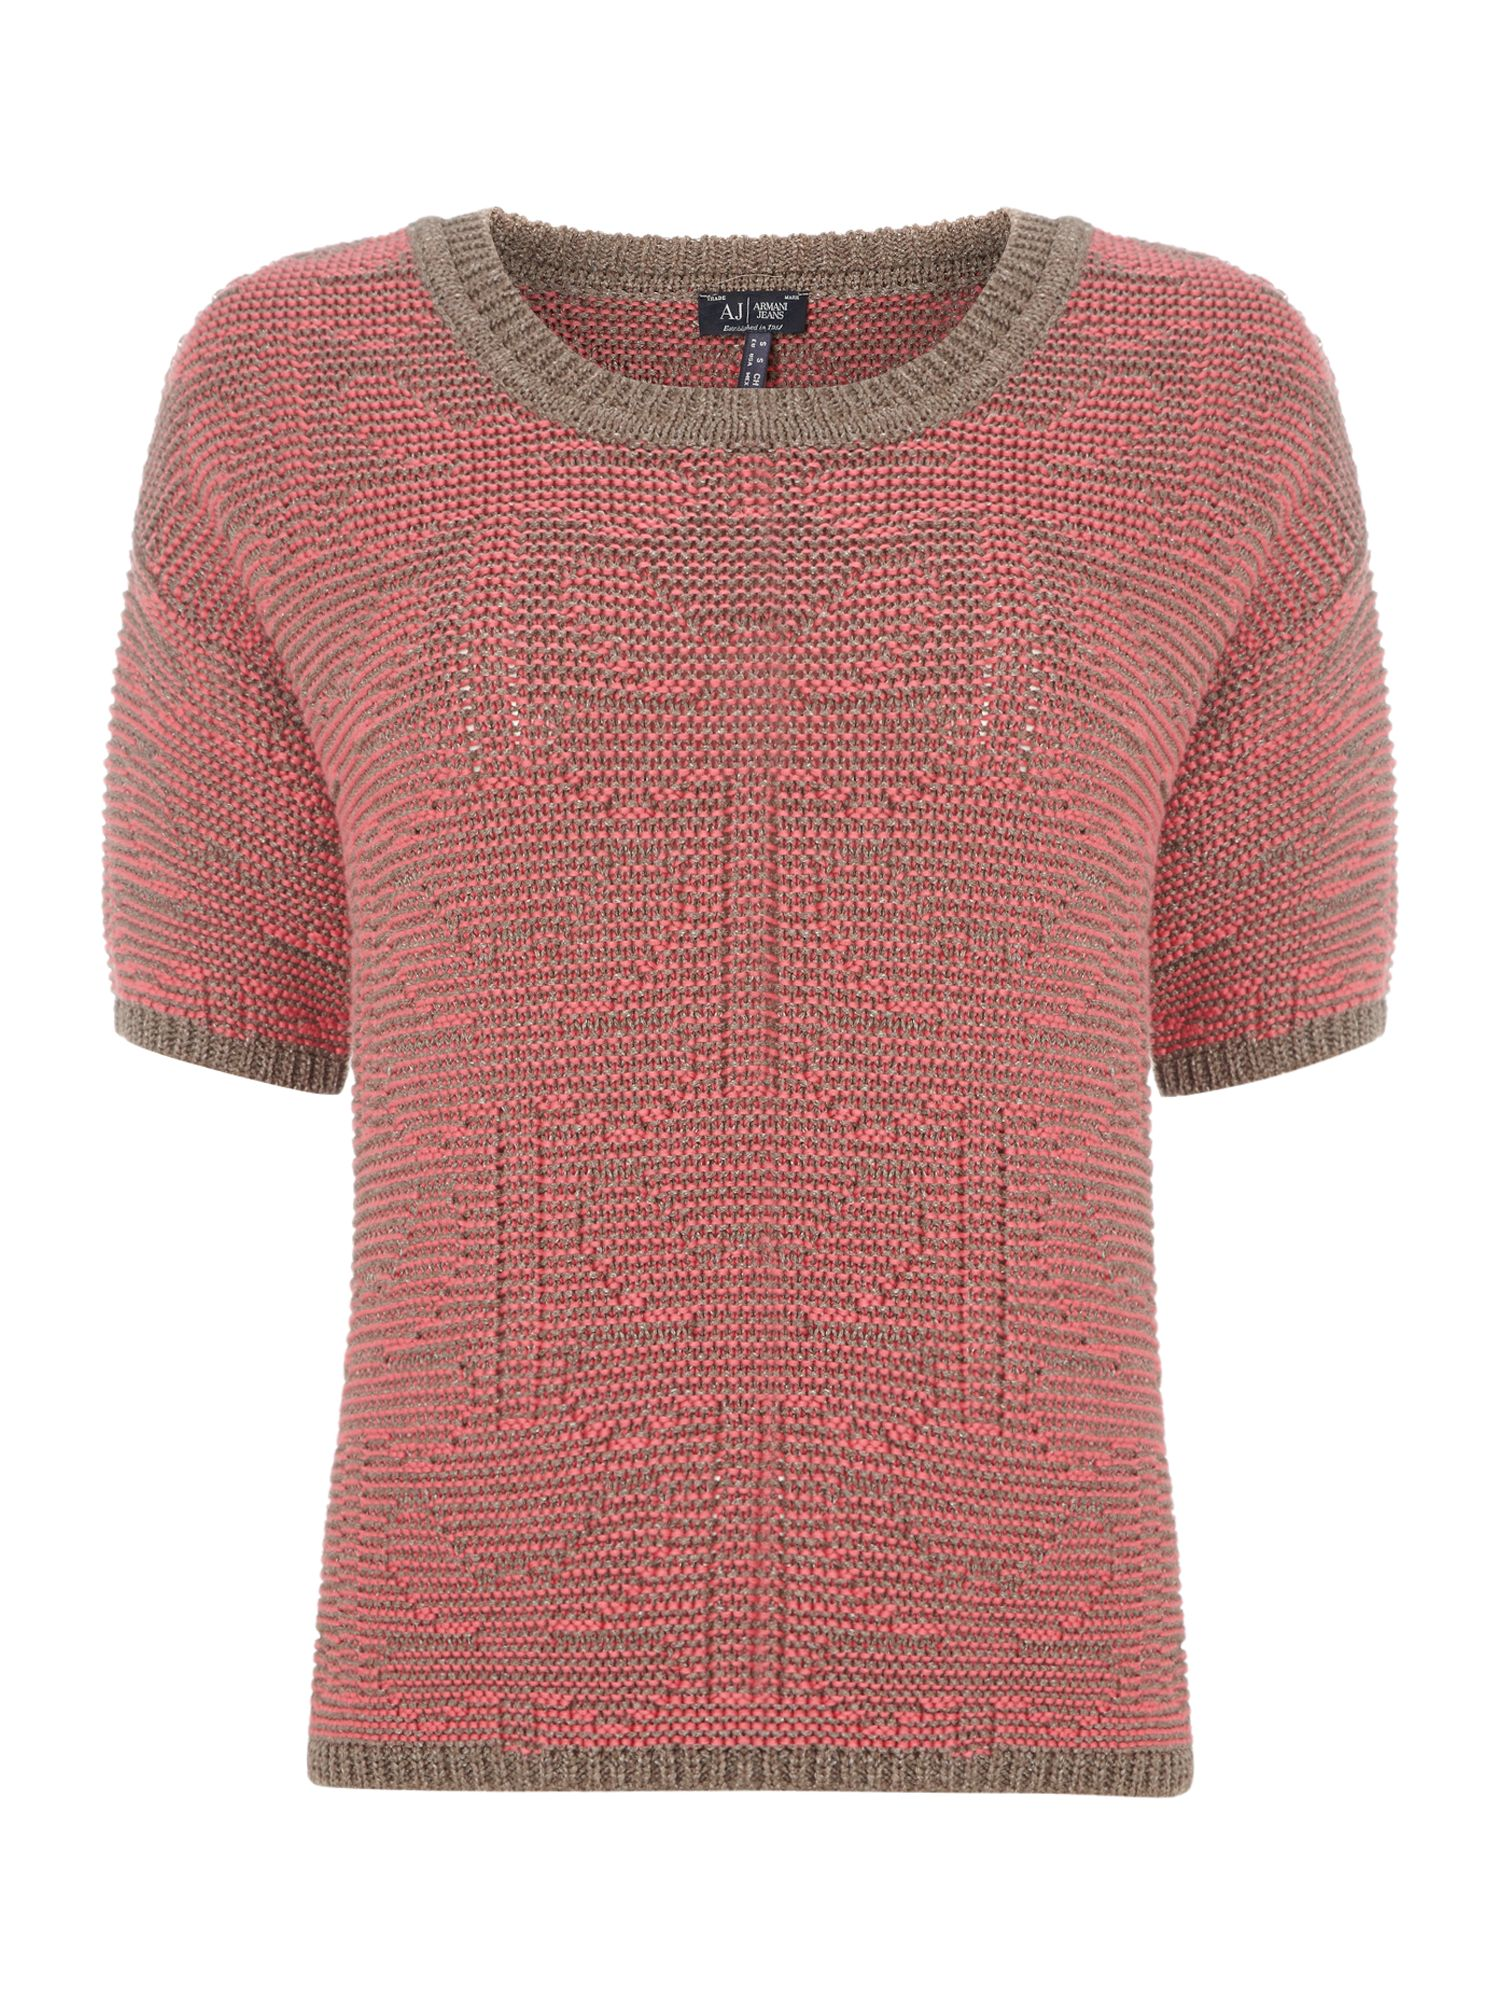 Jumper with dragonfly print